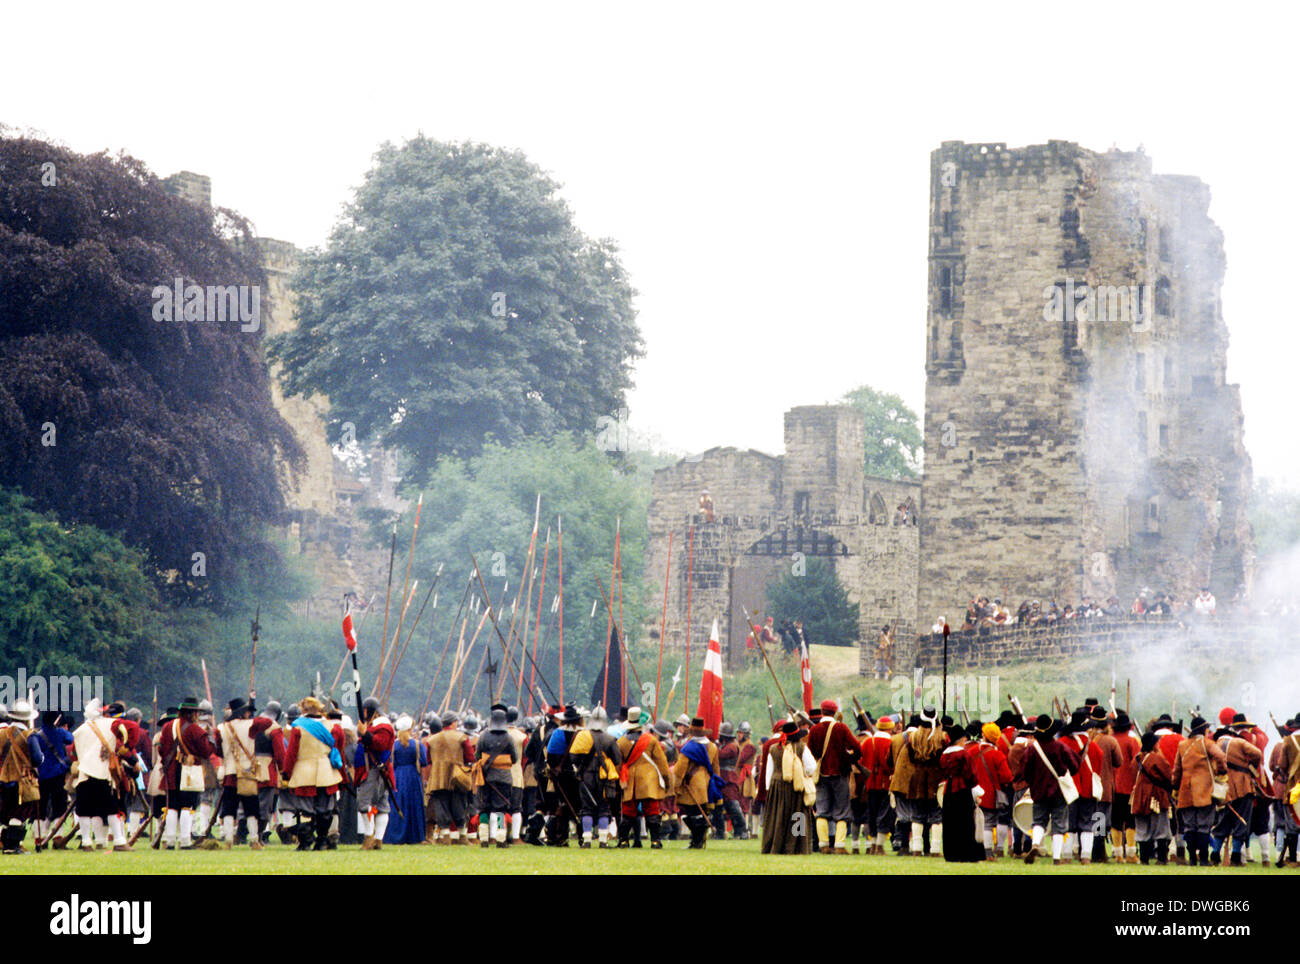 Ashby de la Zouch, English Civil War siege, 1640 historical re-enactment, soldiers, cavalry, Leicestershire England UK - Stock Image